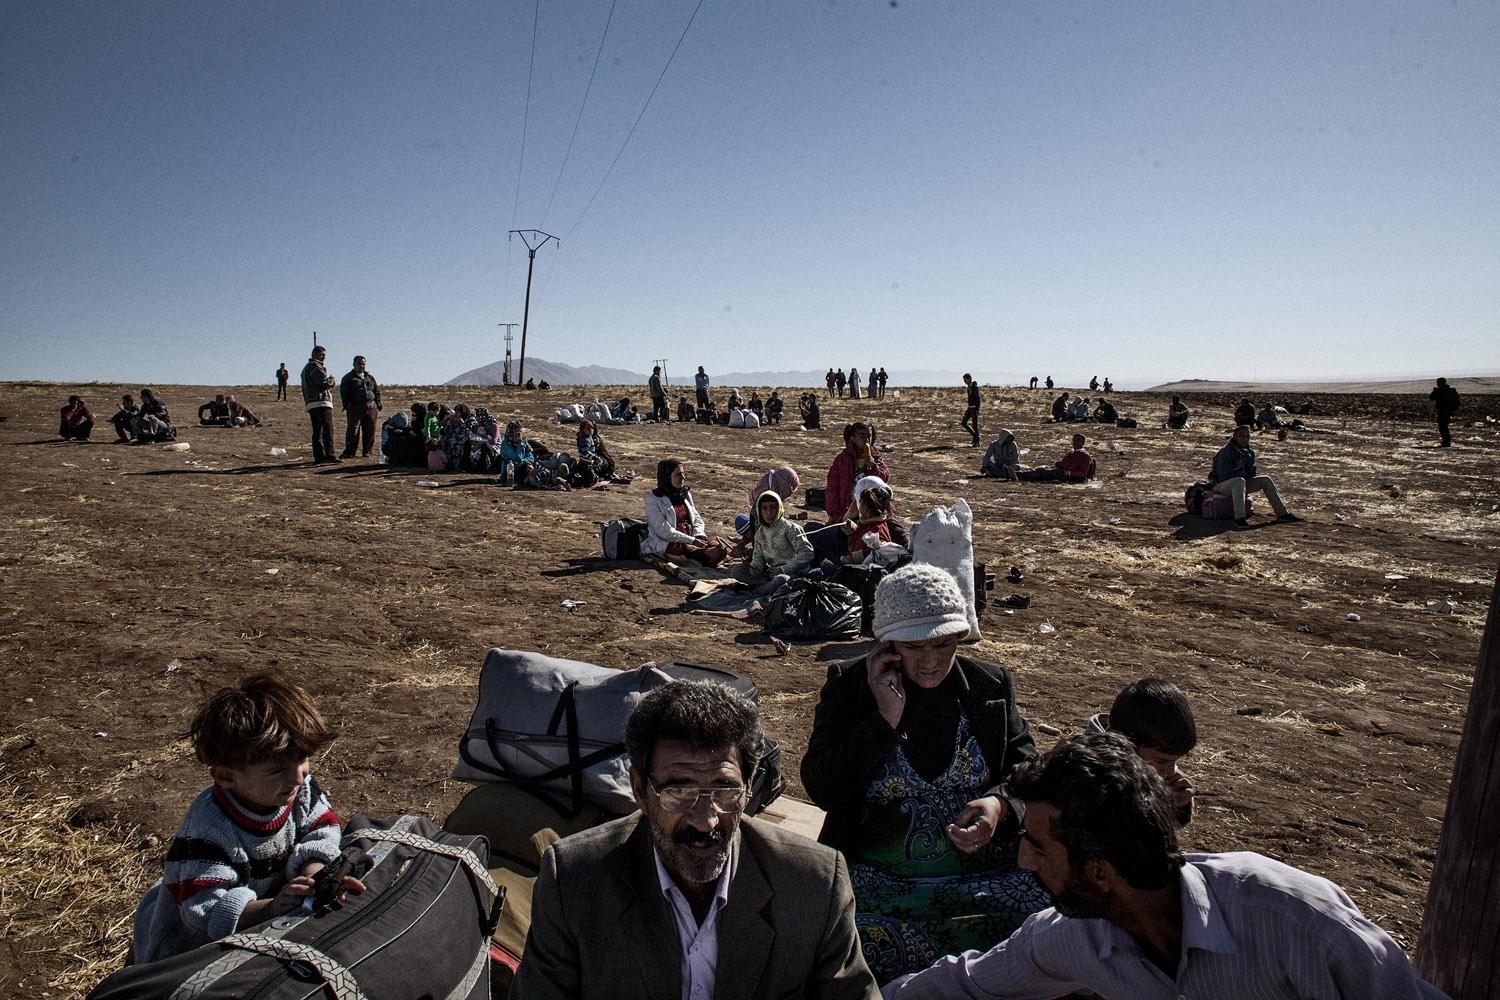 The following images were taken in the Kurdish areas of Syria and Iraq in October 2013.                                                              Internally displaced Kurds wait near the Syrian side of the border with Iraq.